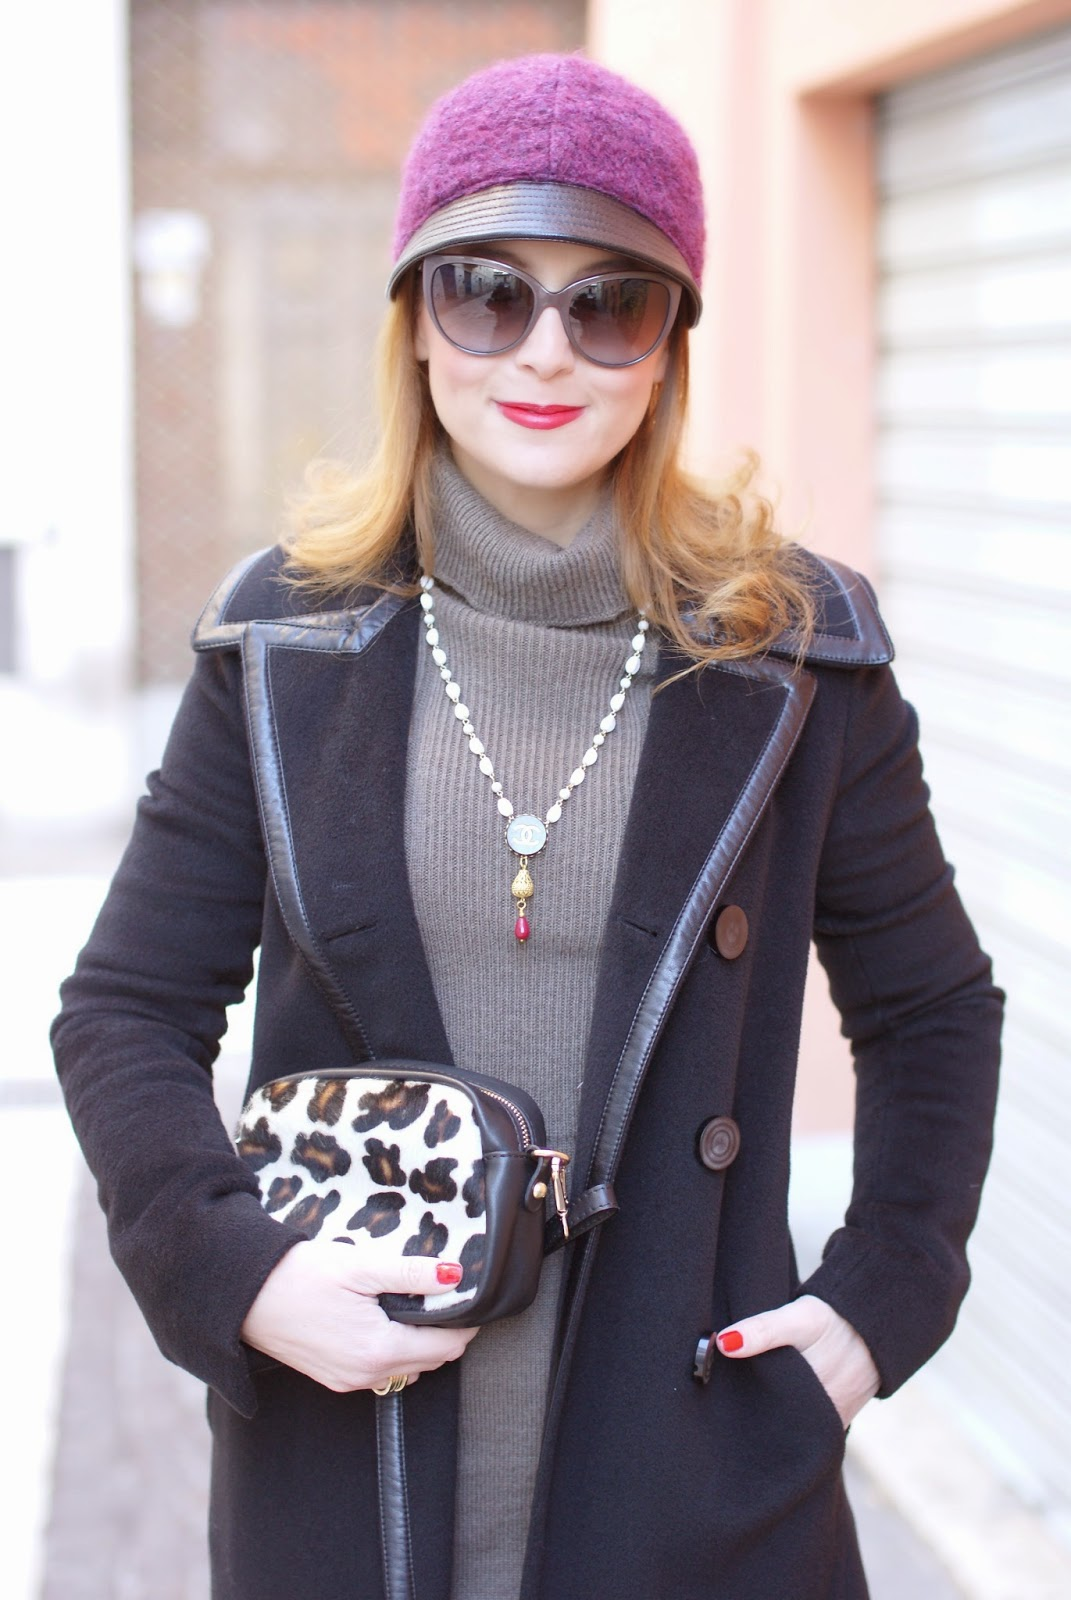 Balenciaga black coat, jockey hat, Theatrebijoux necklace, Sofia borse Candy pochette, Fashion and Cookies, fashion blogger